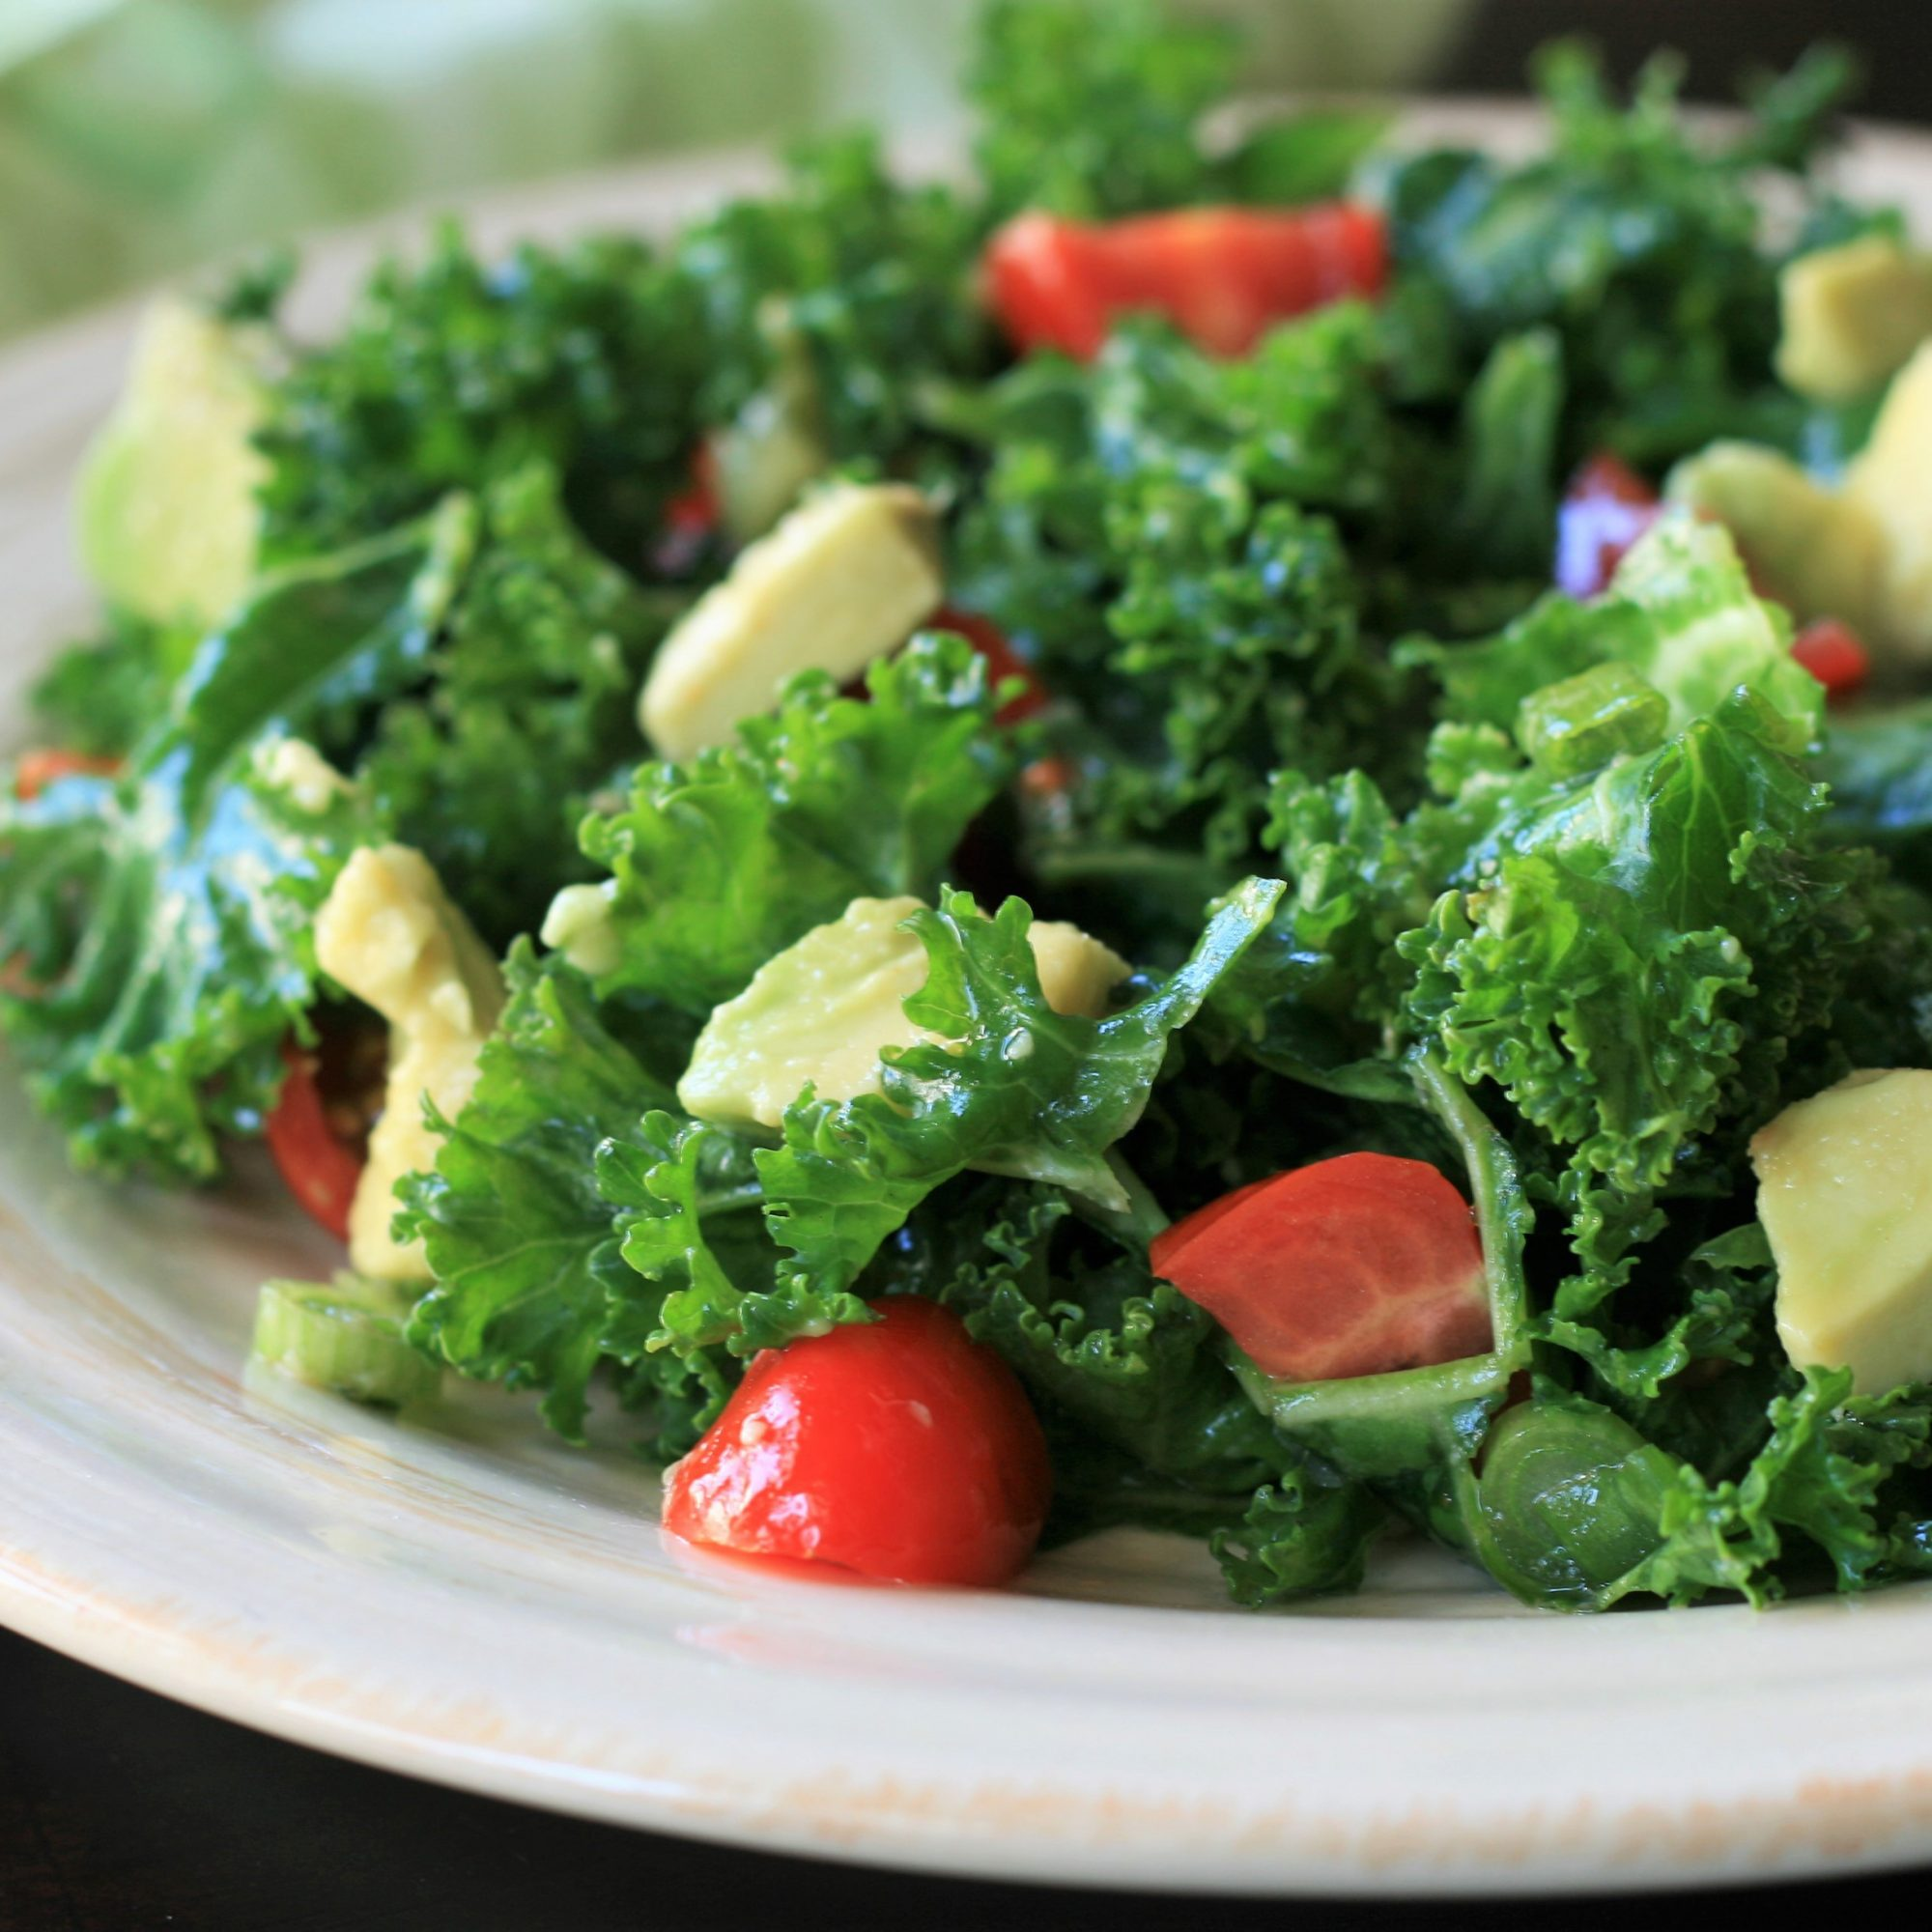 Kale Salad with Avocado on a white plate